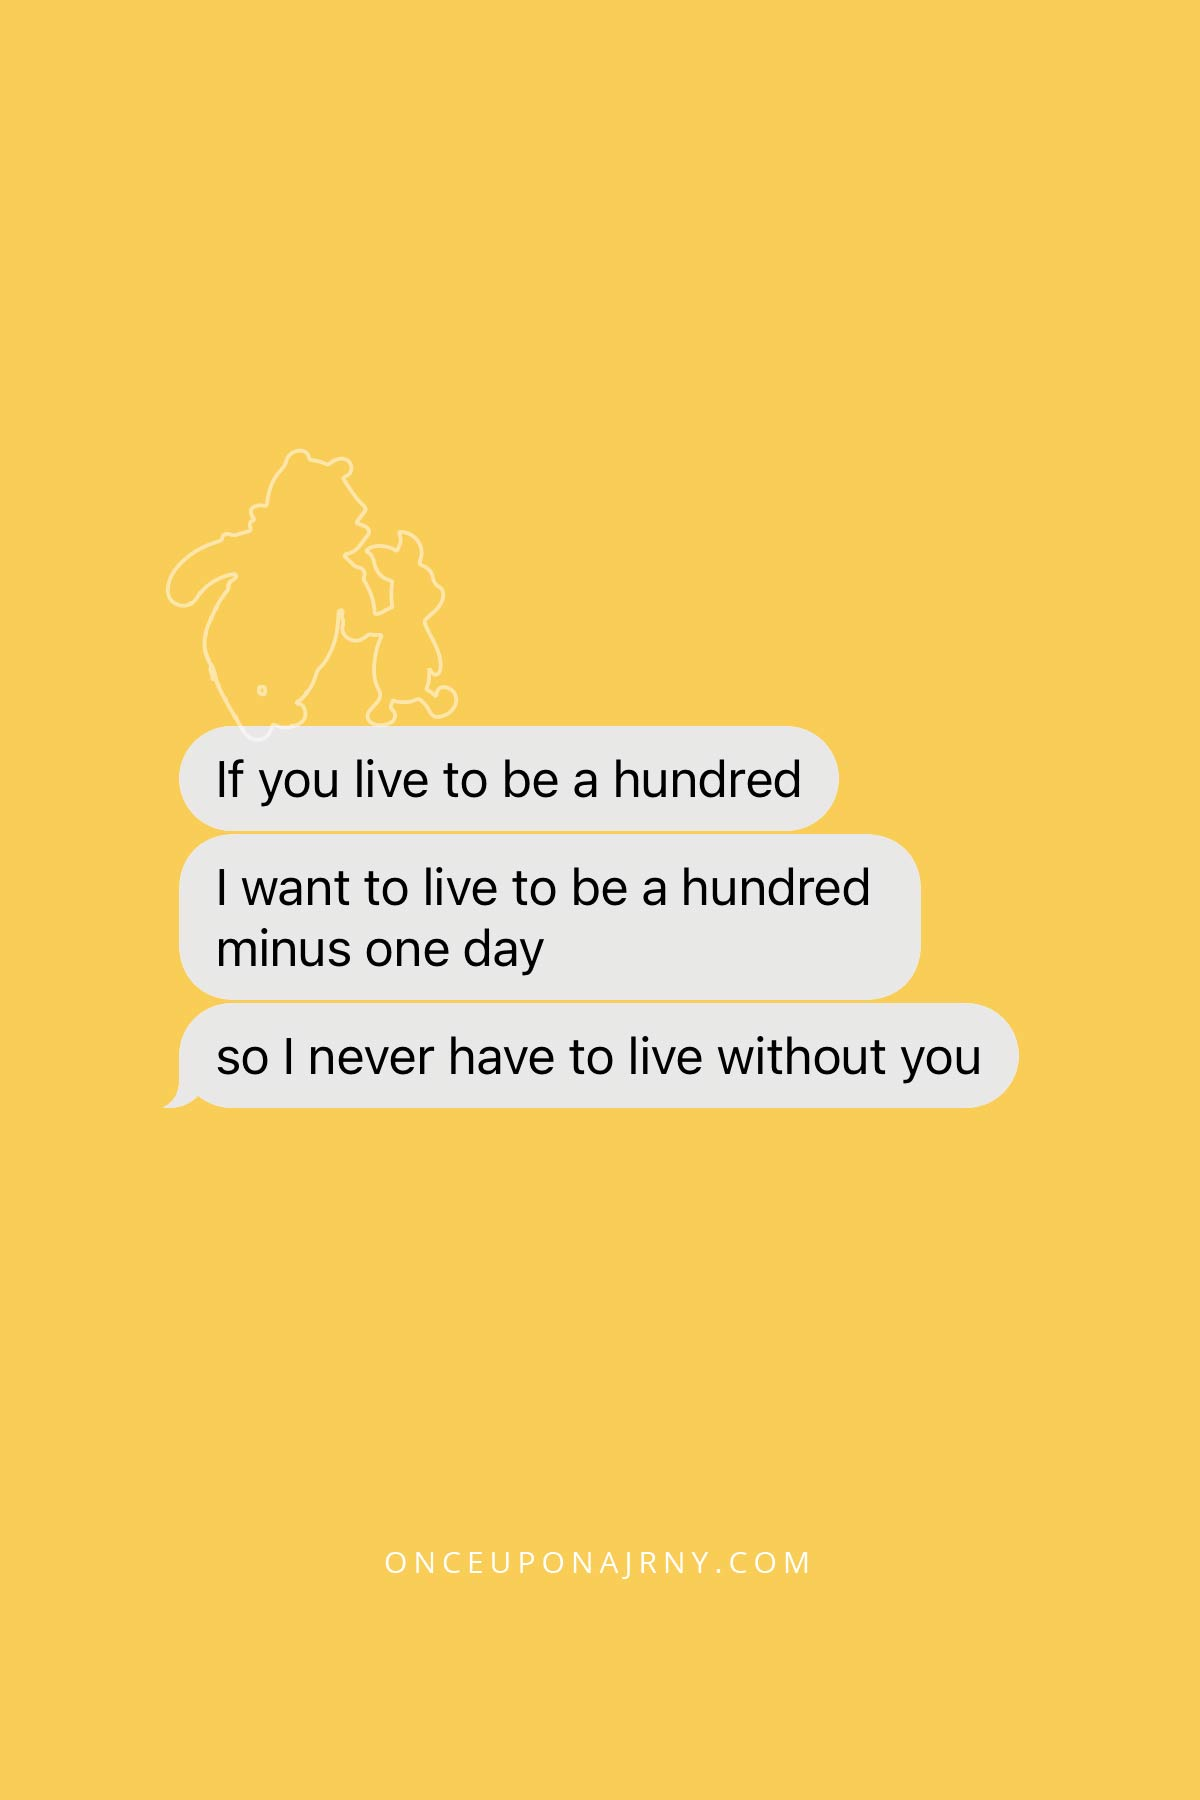 If you live to be a hundred, I want to live to be a hundred minus one day so I never have to live without you. - Winnie the Pooh lesbian quotes for your girlfriend